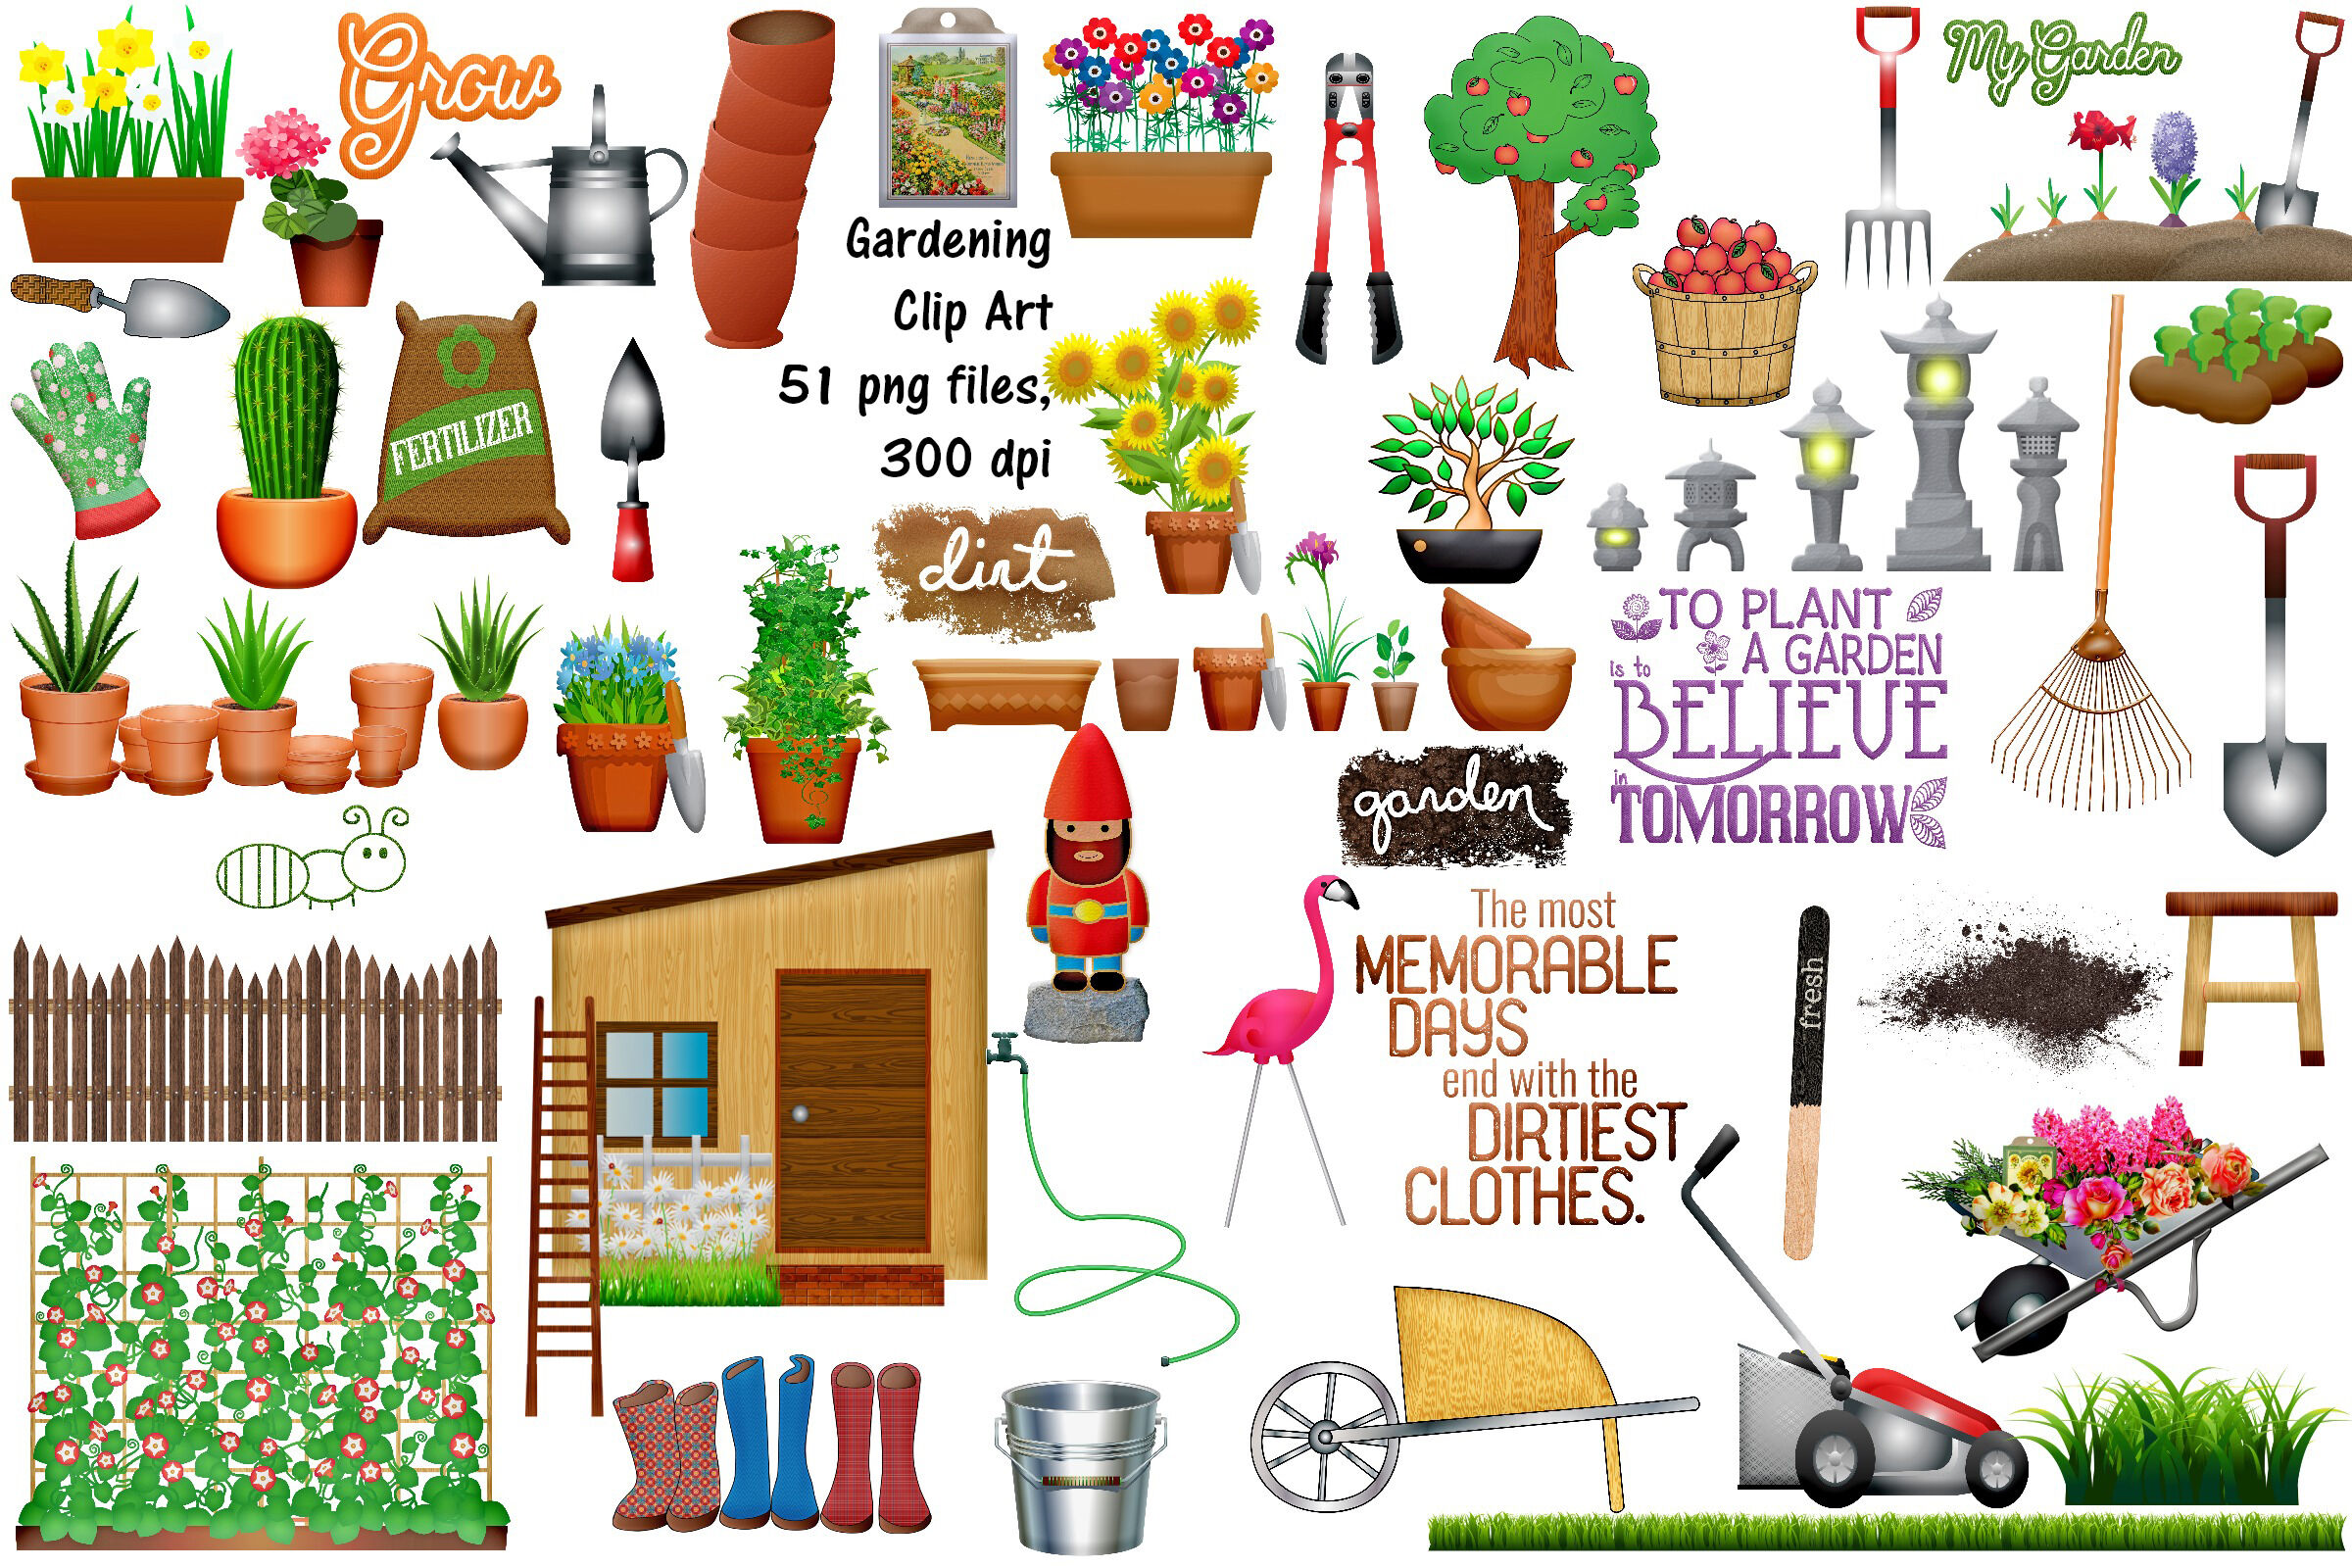 Gardening Clip Art Plus BONUS By Me and Ameliè.